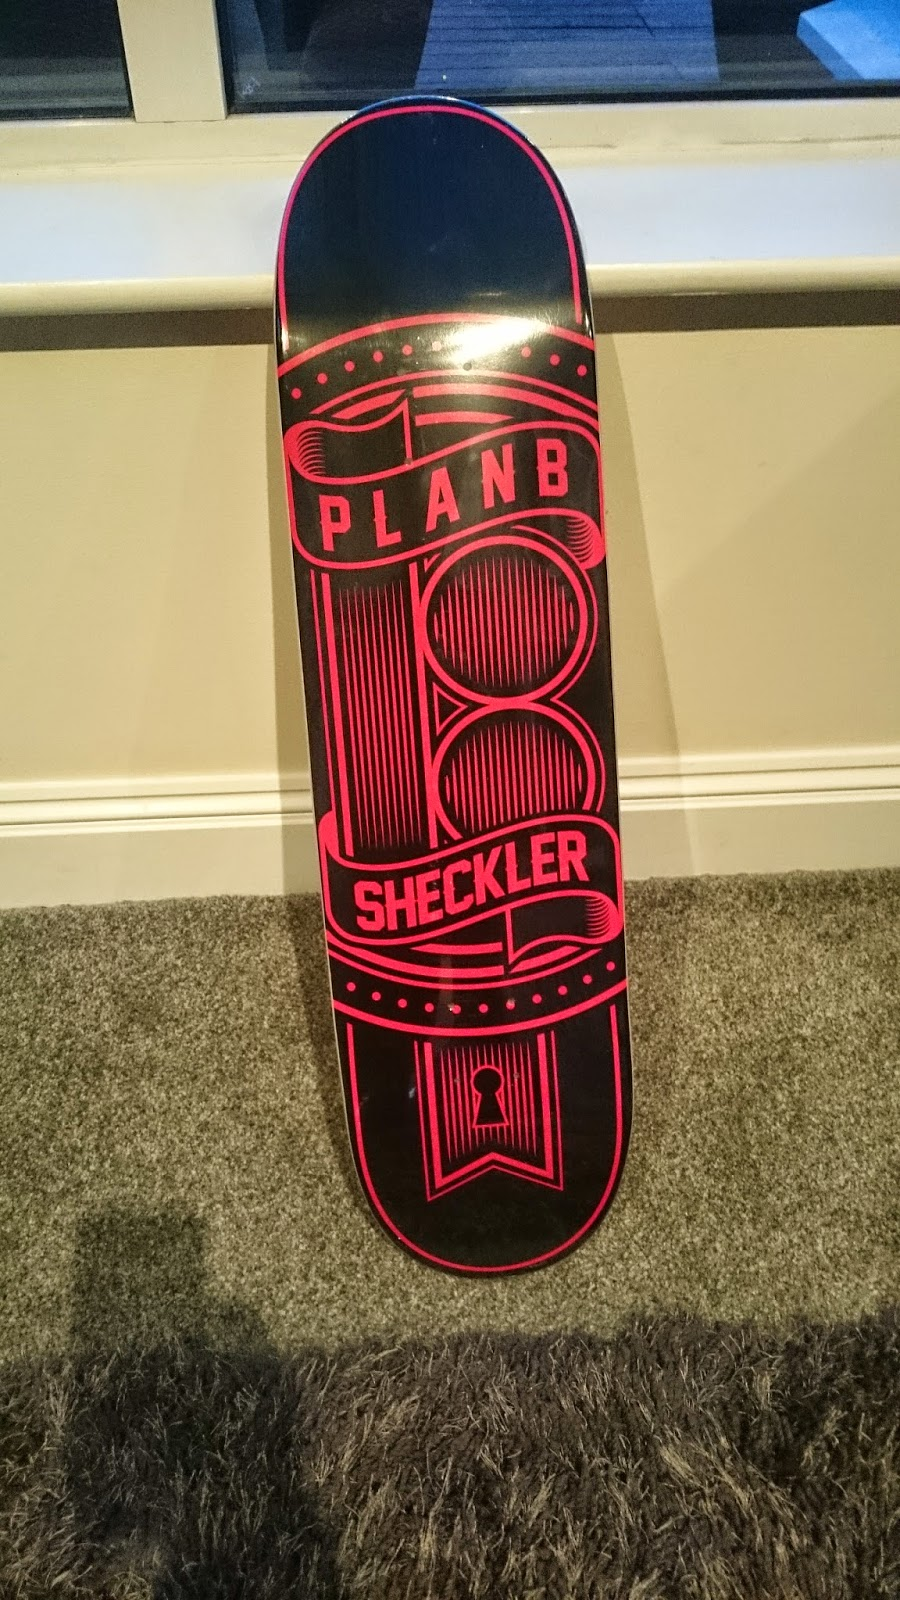 Just a drop charity skateboard car jump april 2015 one of the plan b decks in the sale was that width so i bought it best 3499 ive spent in a long time baanklon Gallery